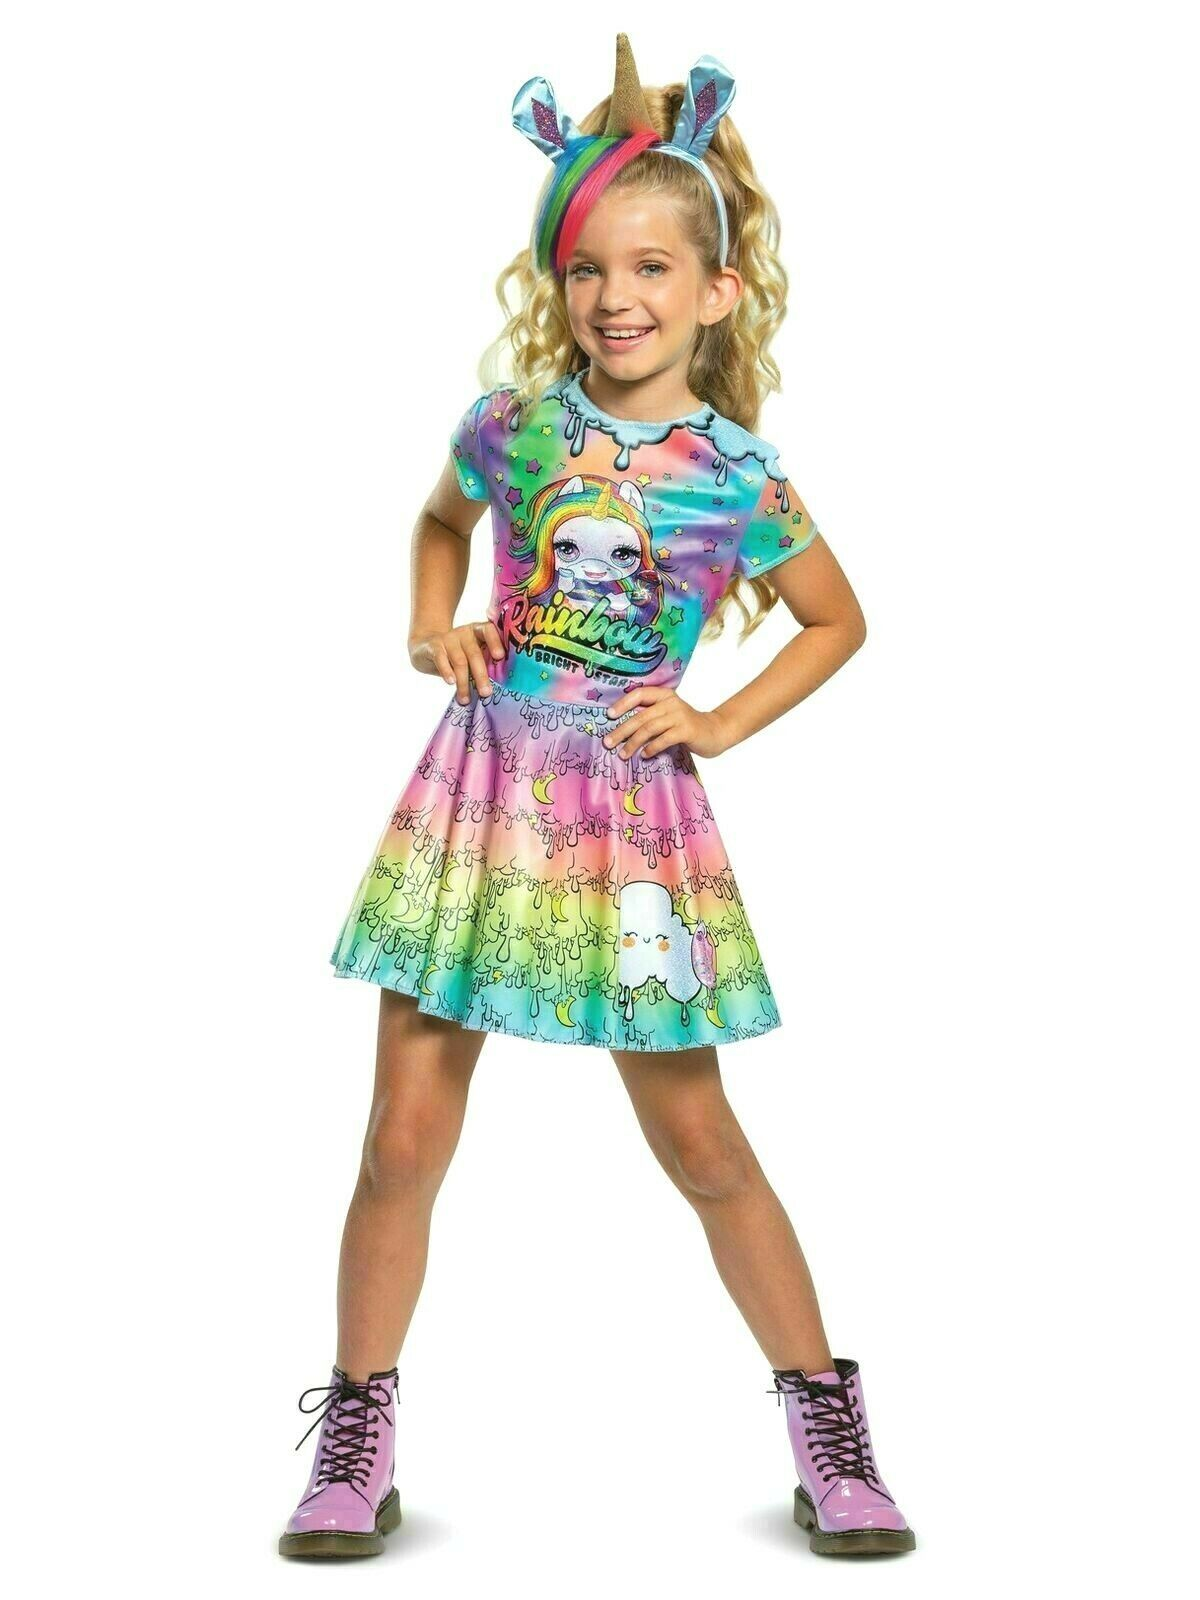 NEW Poopsie Slime Surprise Rainbow Brightstar Costume Dress Girls S 4-6 M 7-8